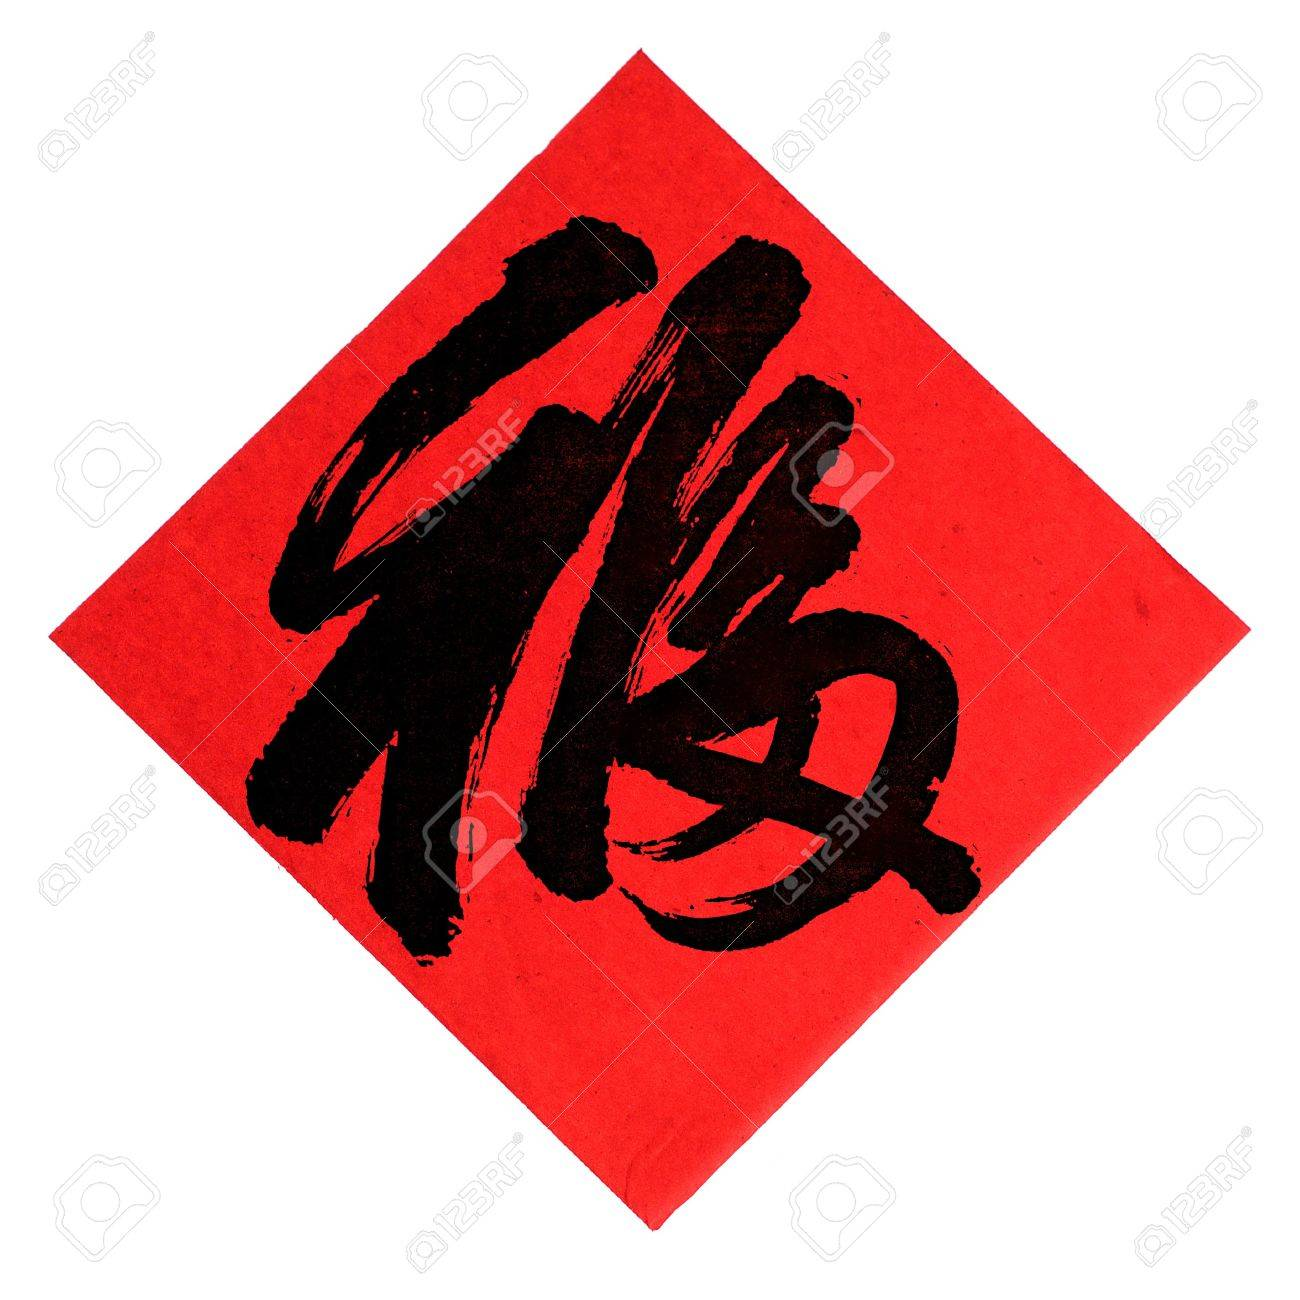 Chinese calligraphy on red paper contain meaning for Chinese New Year wishes Stock Photo - 3994266